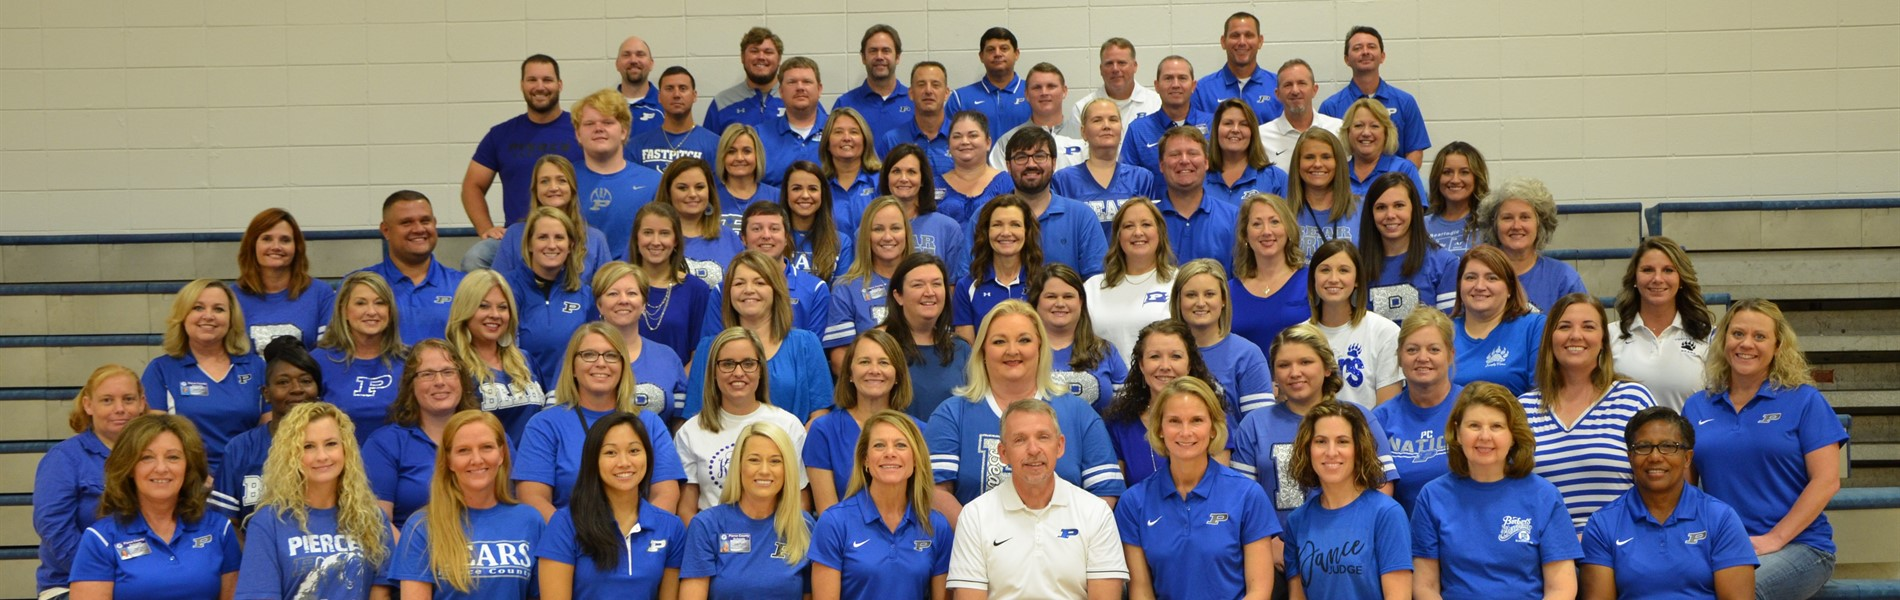 PCMS Faculty 2018-2019